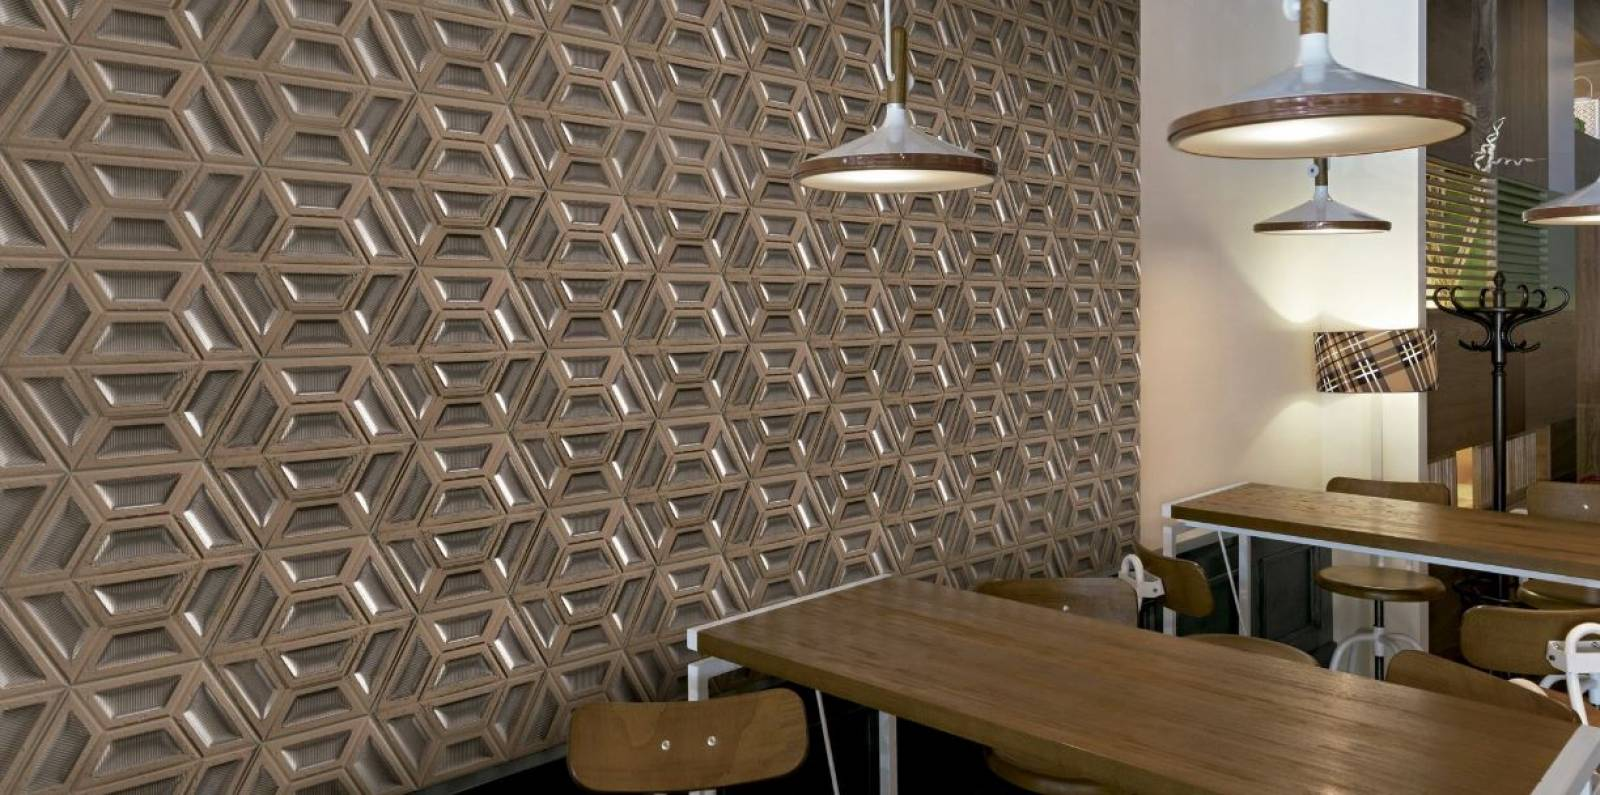 Carrelage mural hexagonal 3d effet ciment ou metallise for Carrelage mural 3d